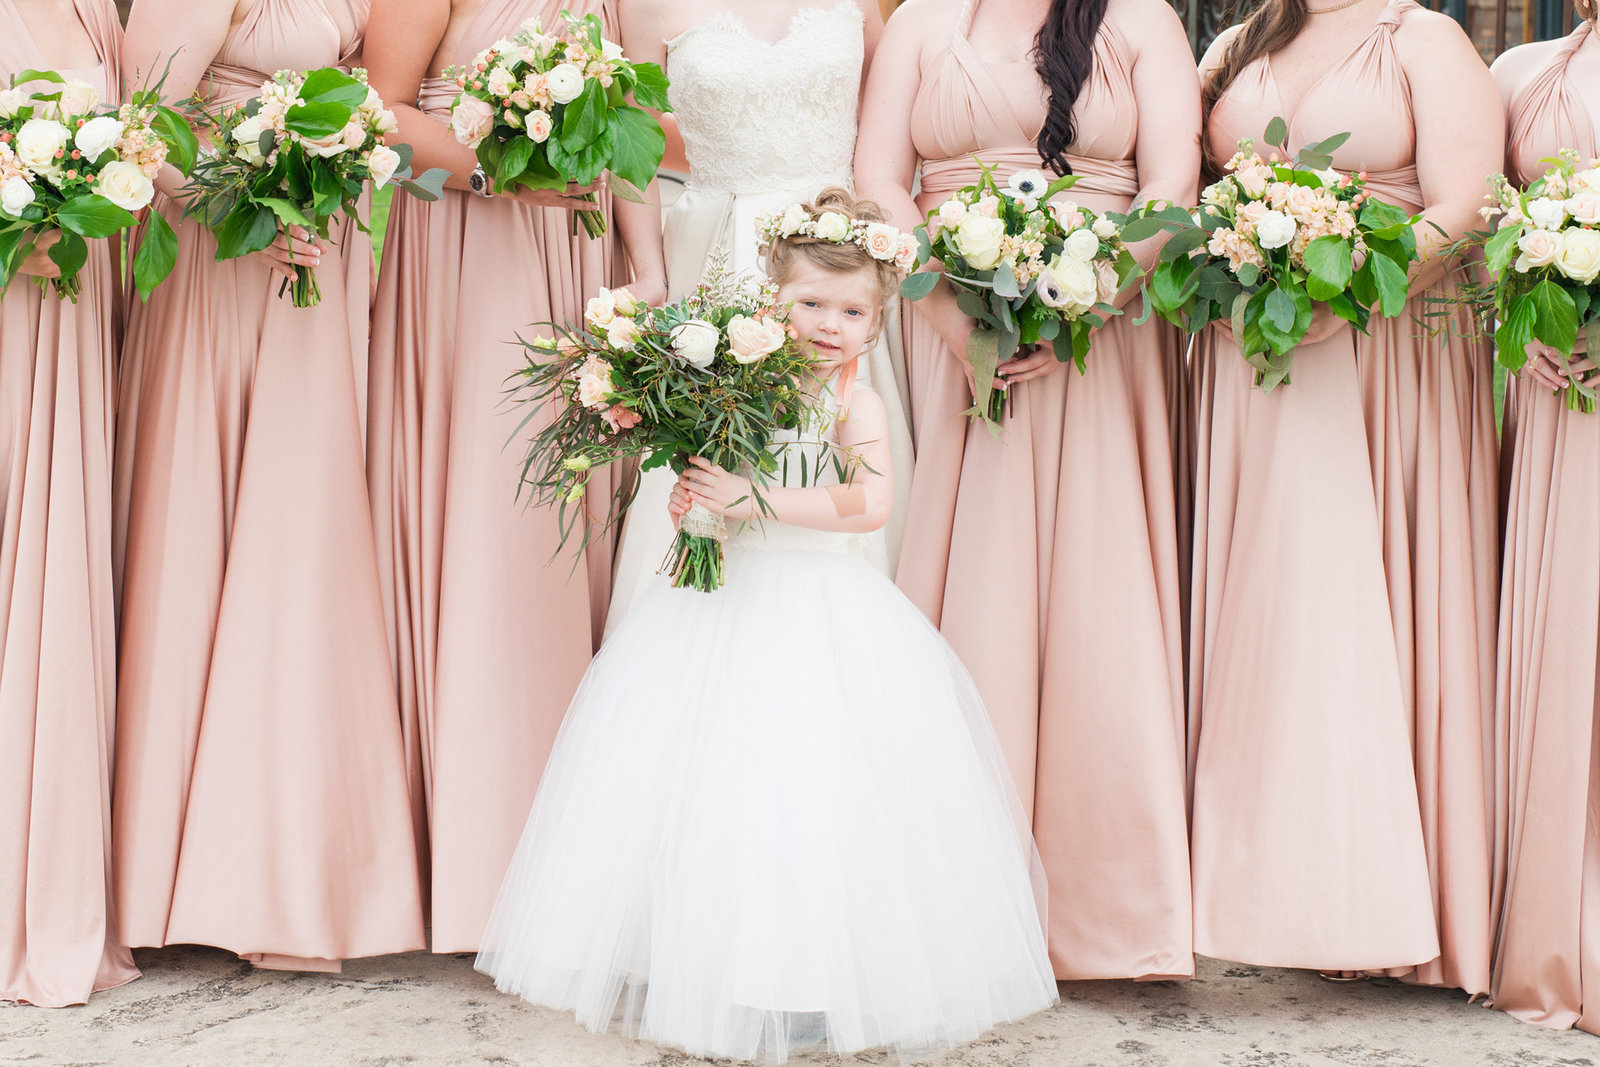 Flower girl holds bridal bouquet with BHLDN bridesmaids wrap dresses behind her at Old Glory Ranch Wedding in Wimberley, Texas